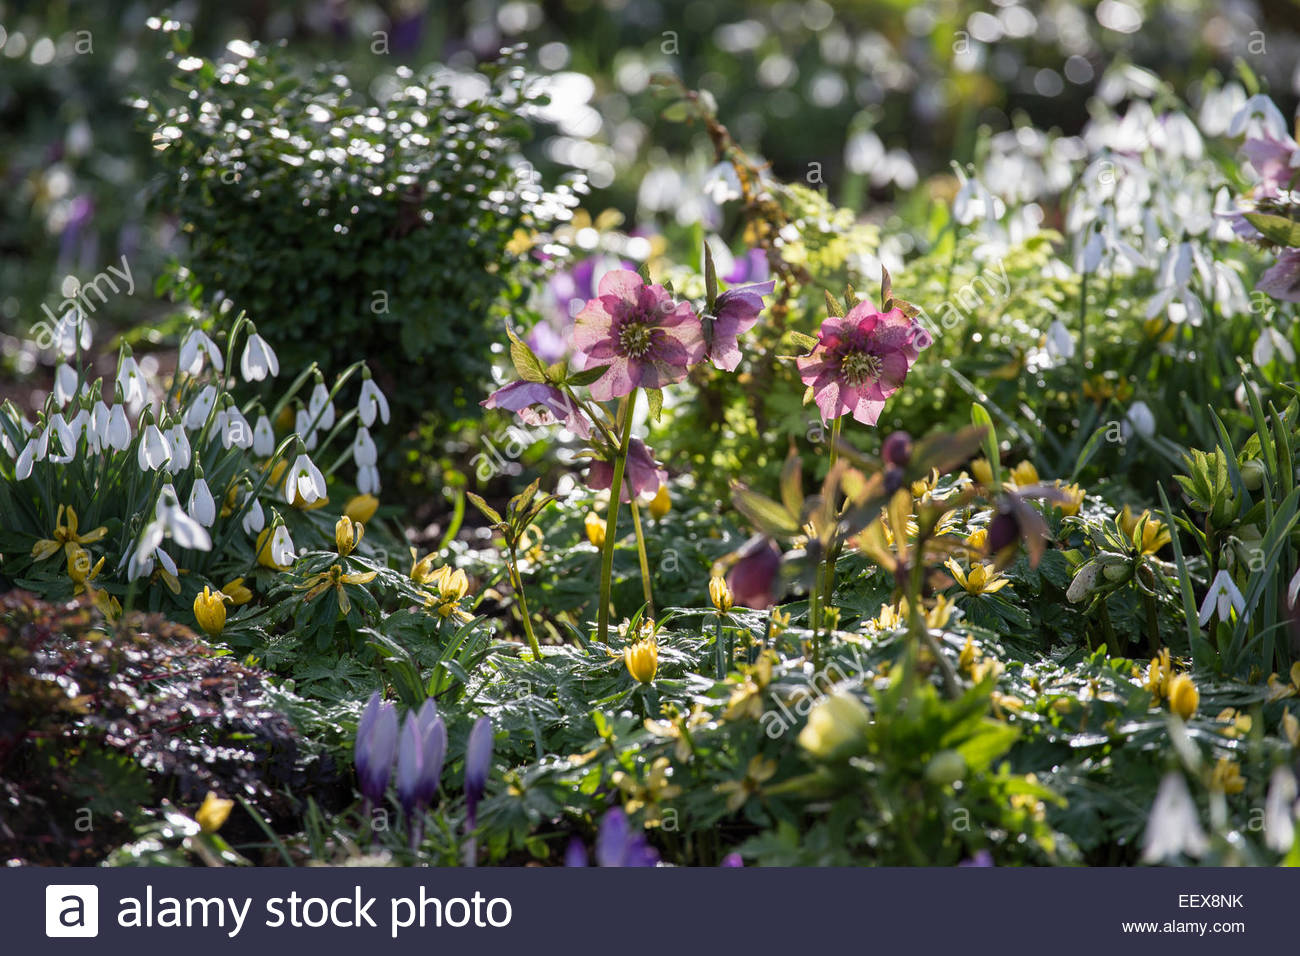 Spring Bulb Garden With Hellebores, Snowdrops And Winter Aconite